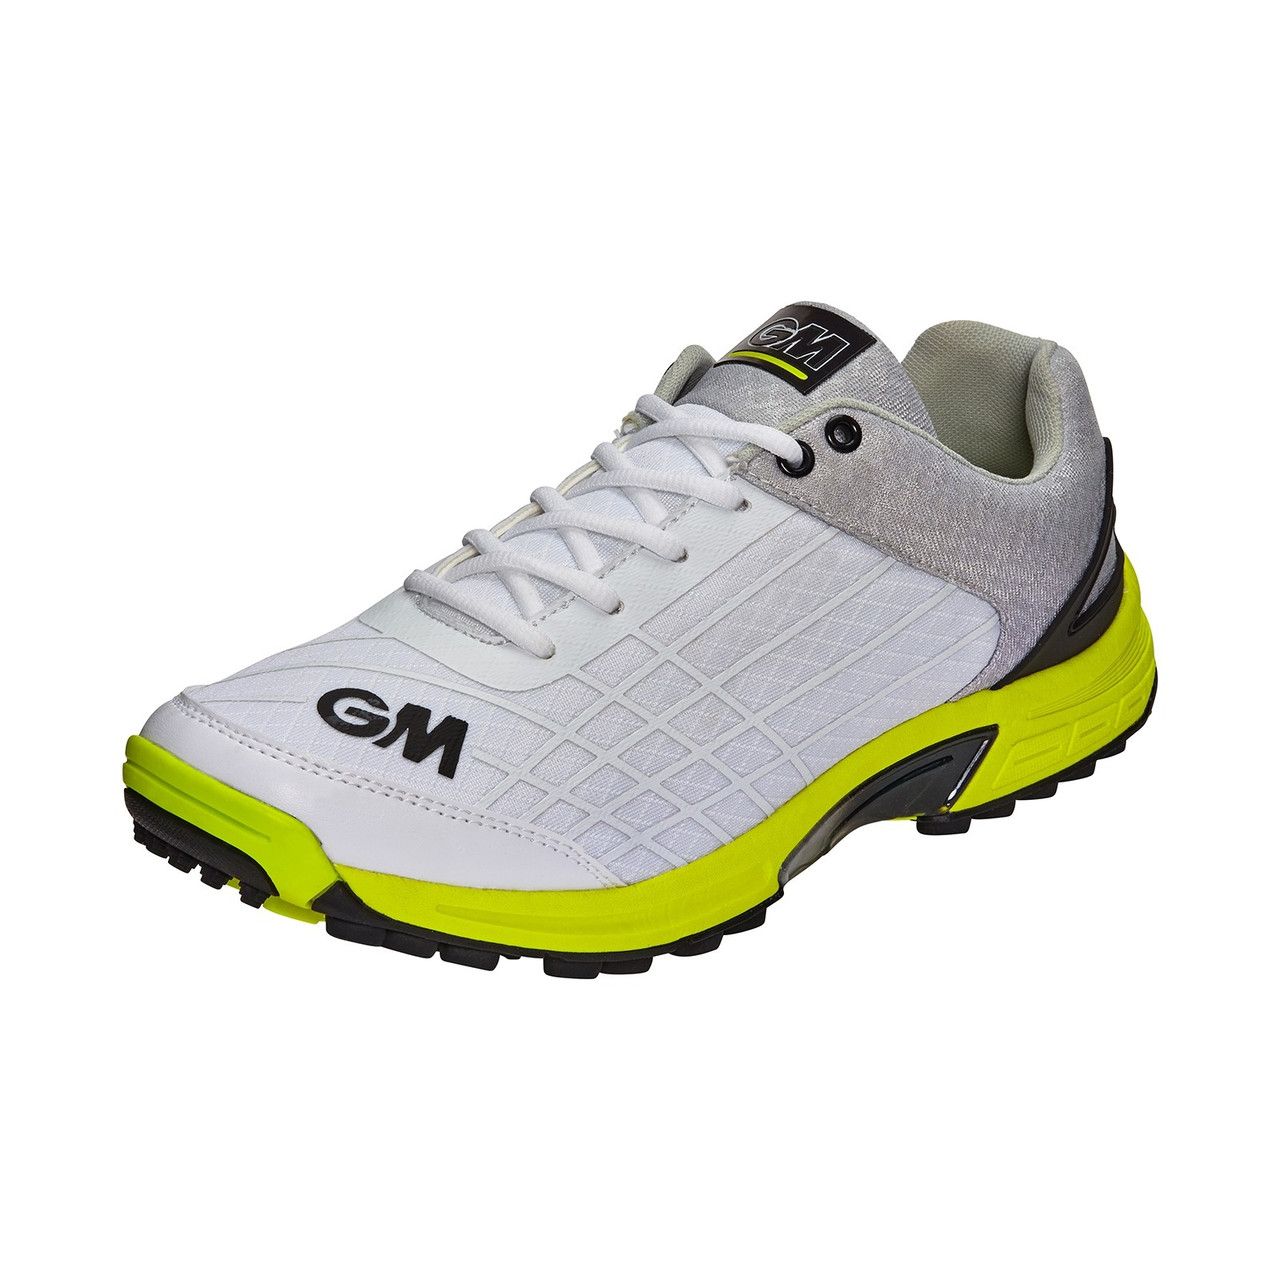 c5ceeed4f8 GM Original All Rounder Cricket Shoes 2019 | GM Cricket